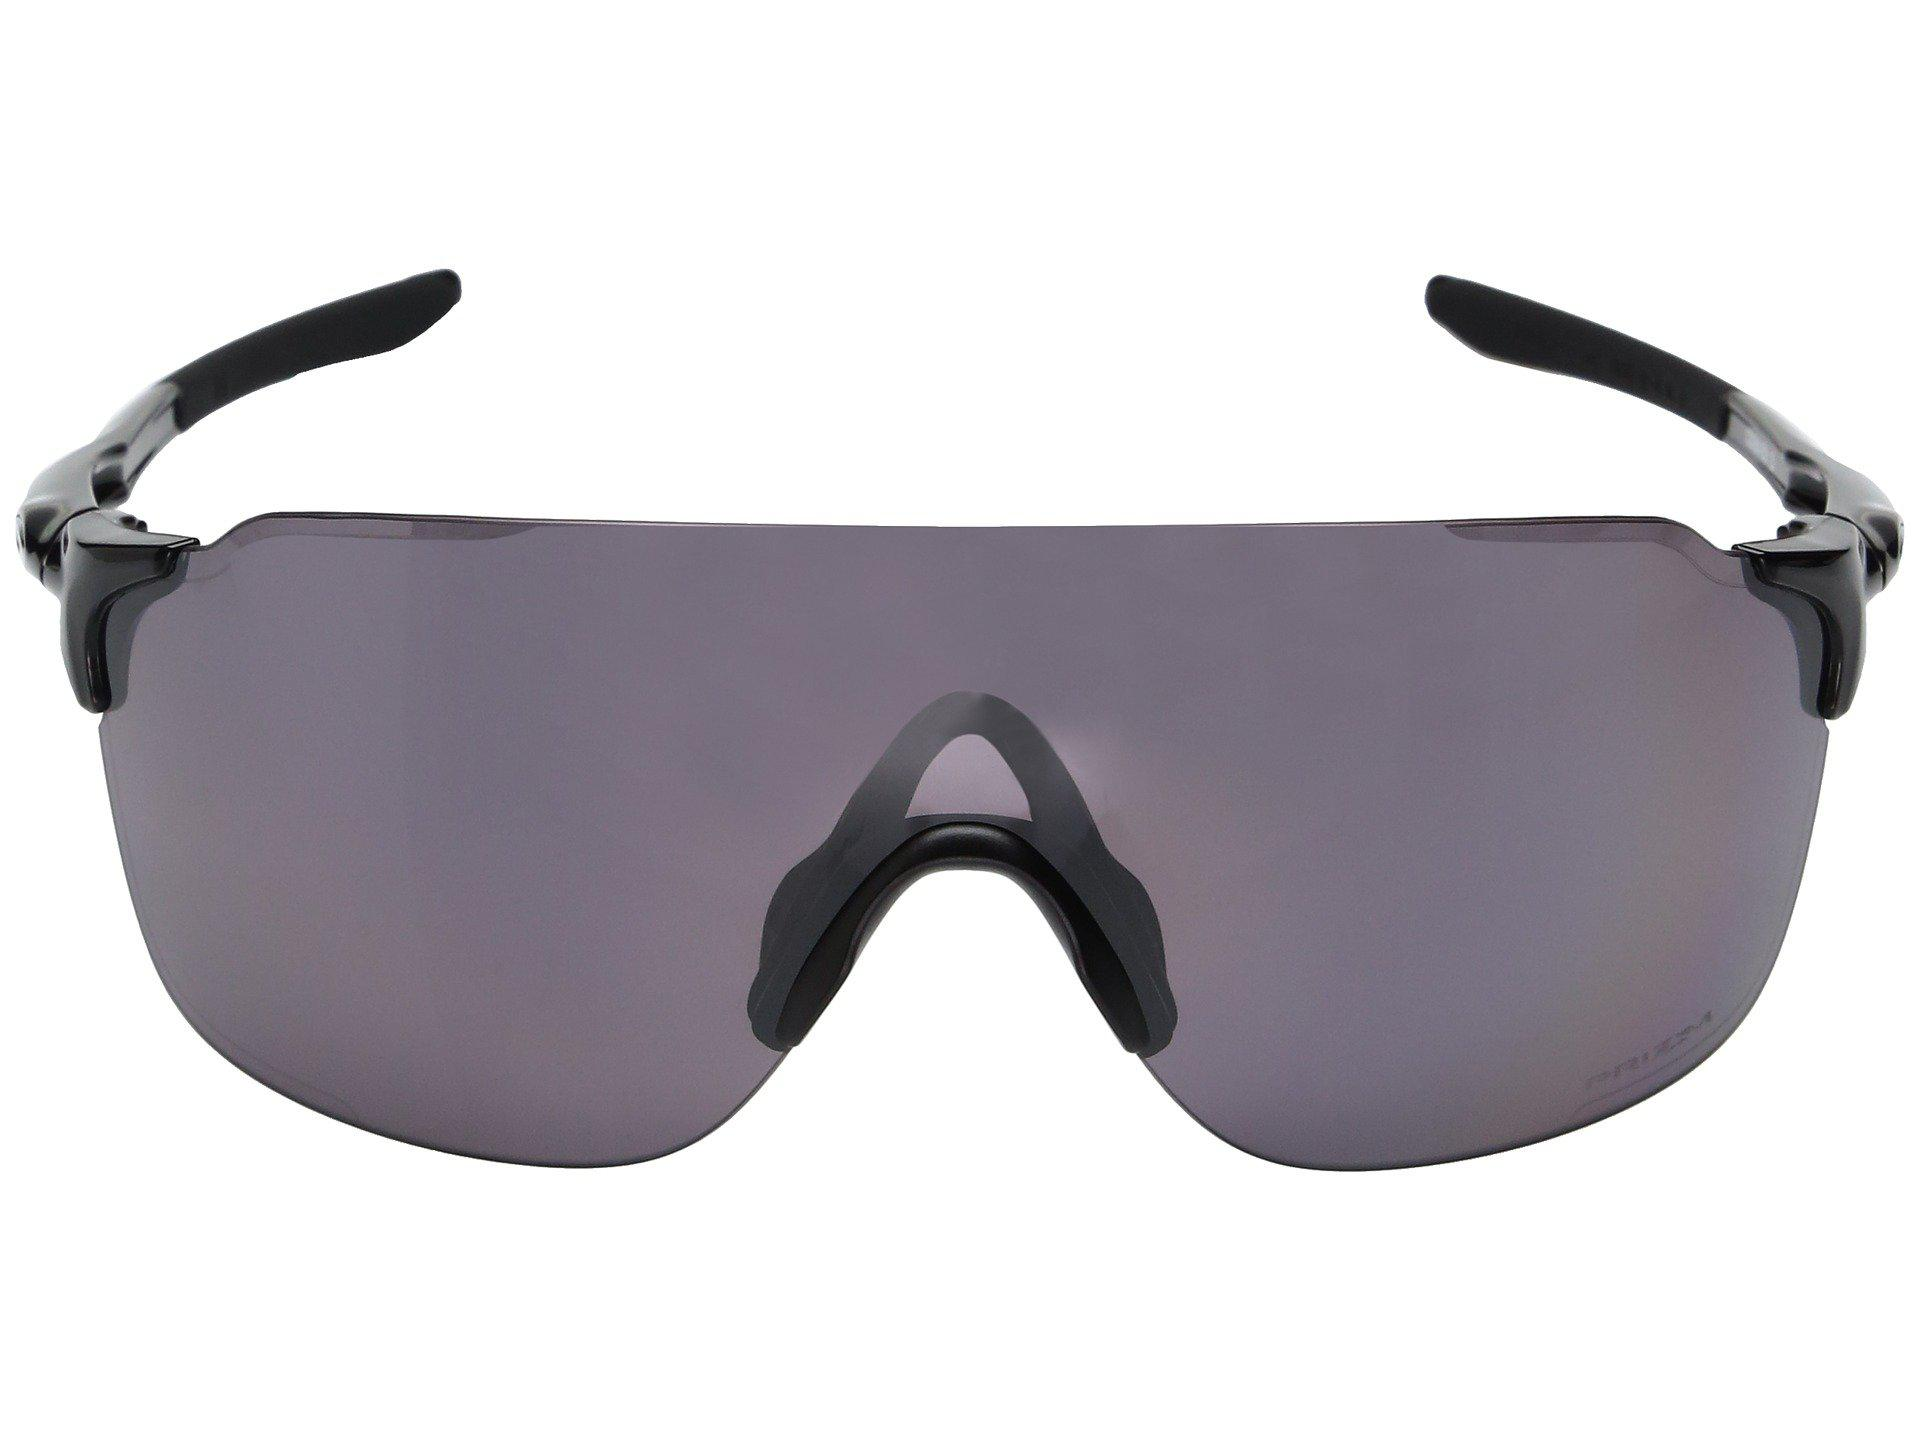 6280e99422ed Oakley - Evzero Stride (matte Black W  Prizm Road) Fashion Sunglasses -  Lyst. View fullscreen